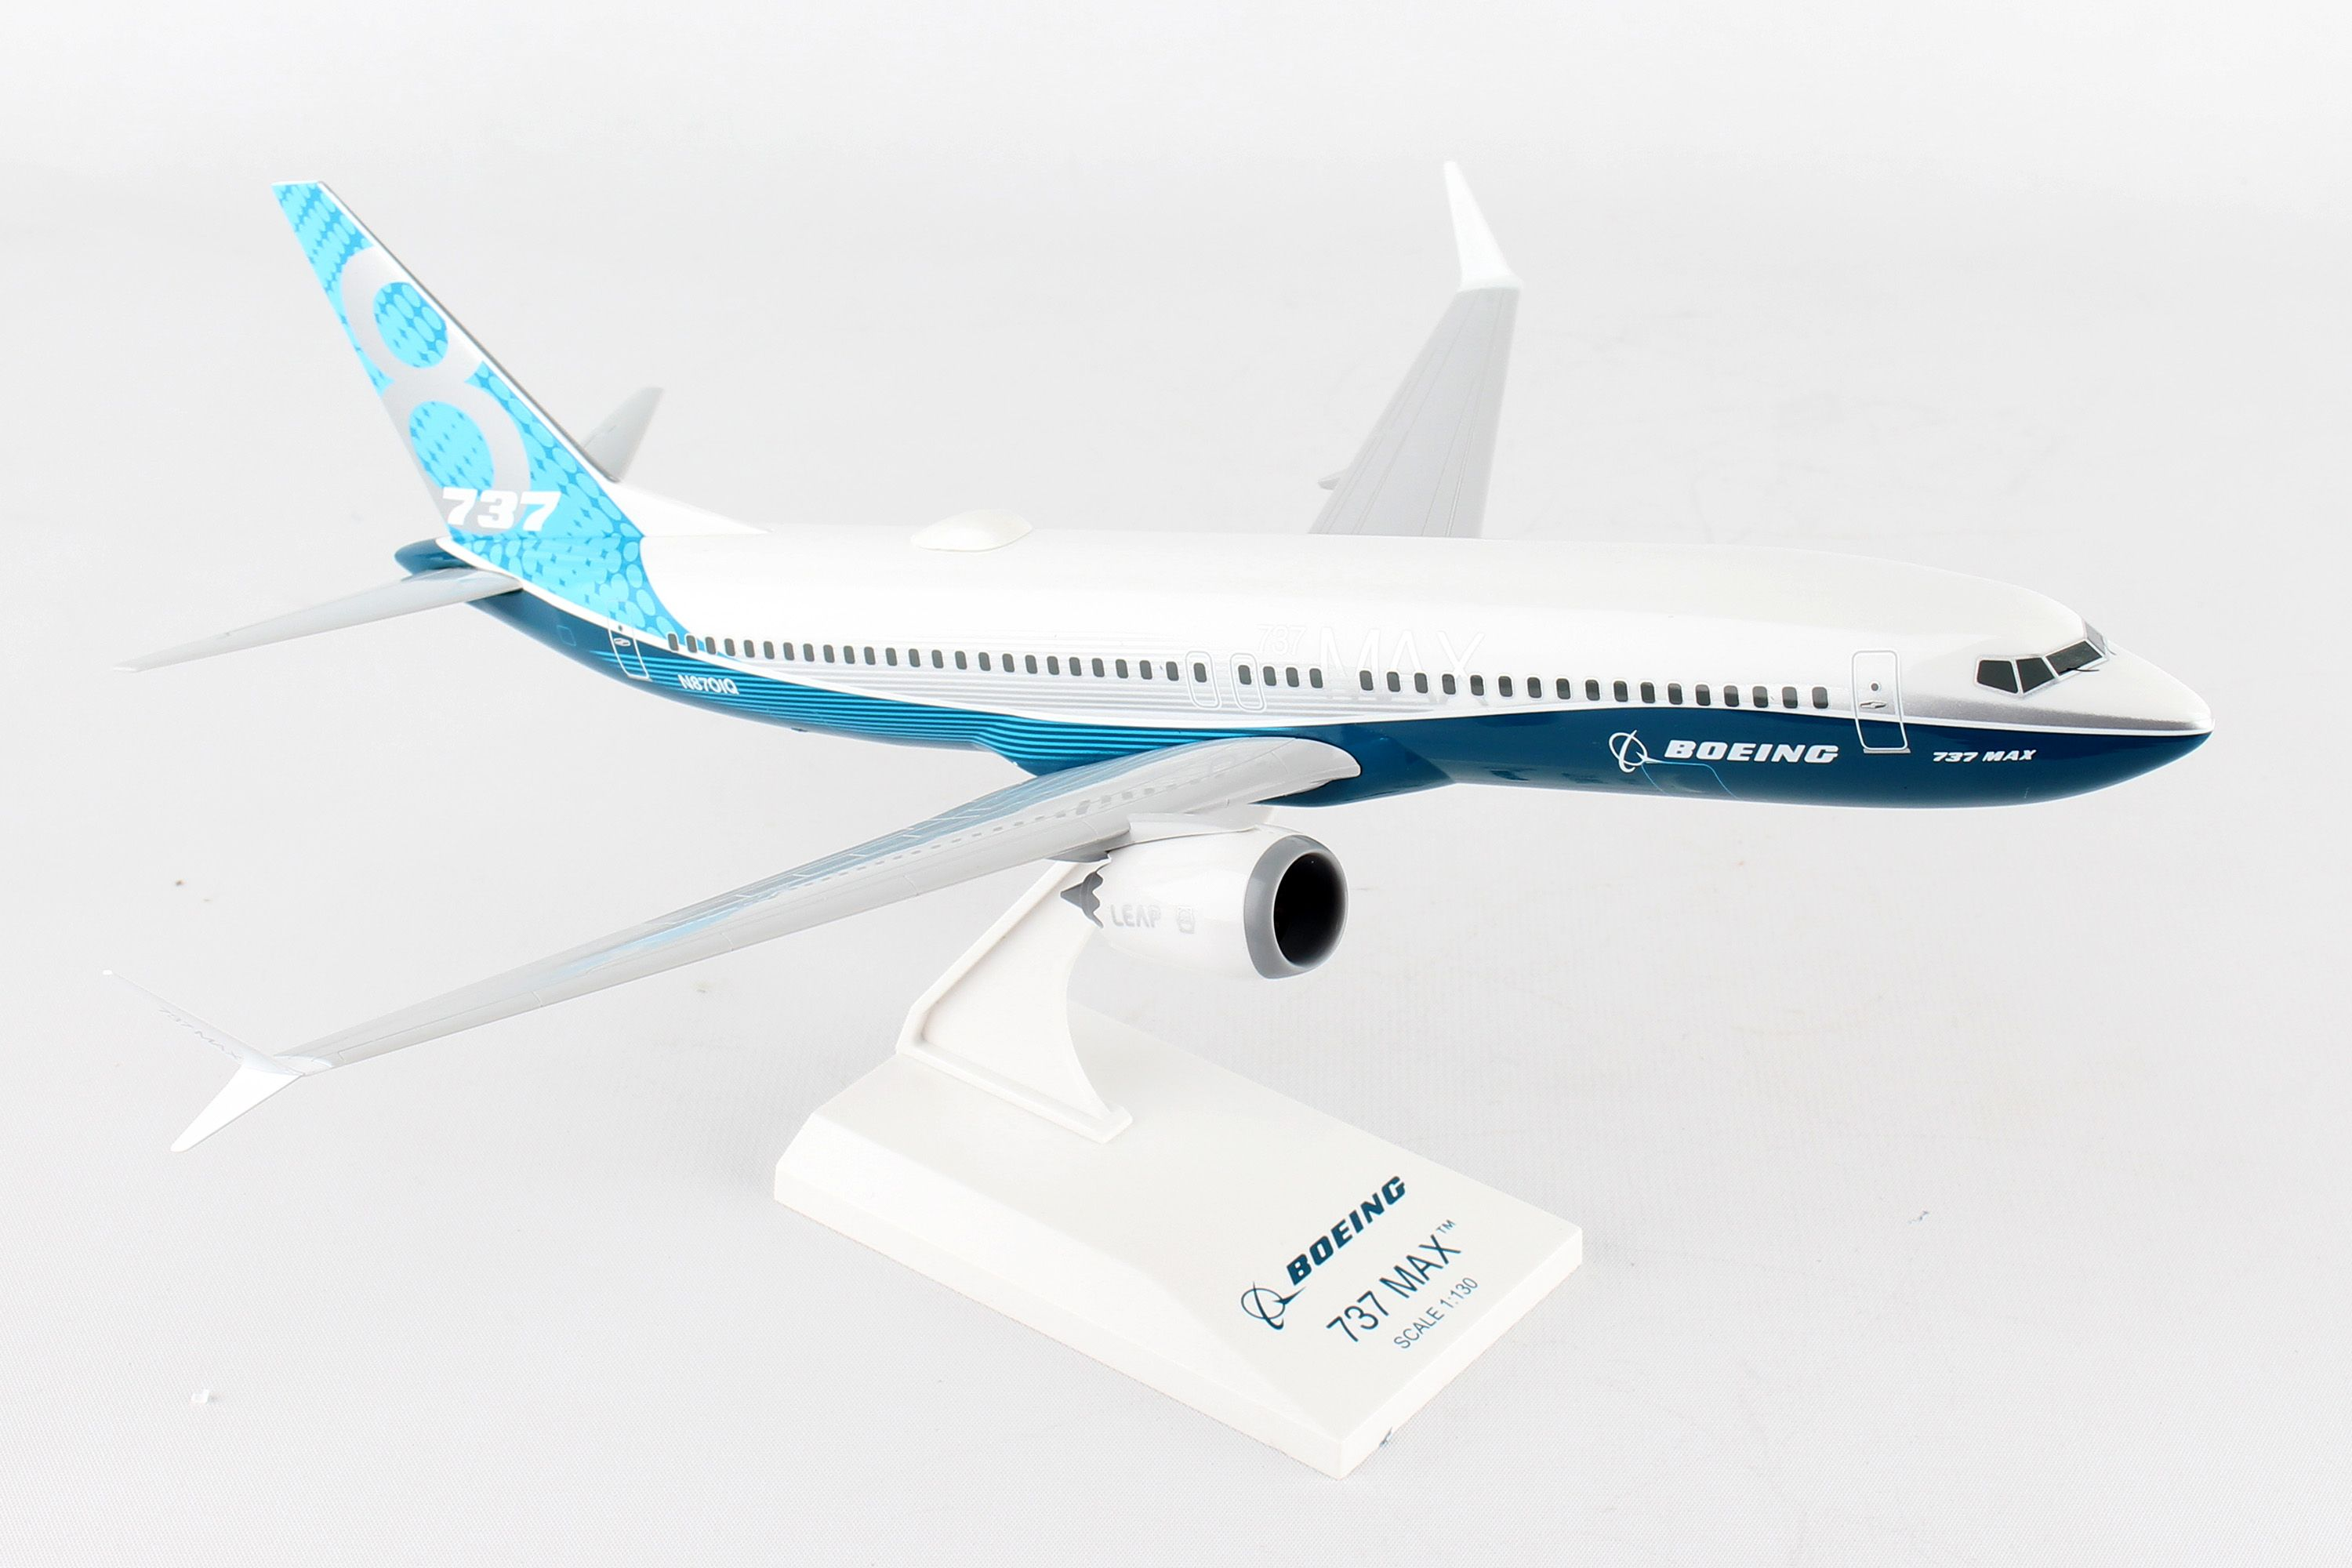 Herpa Wings 1 /_ 500 ng boeing House Colours b717